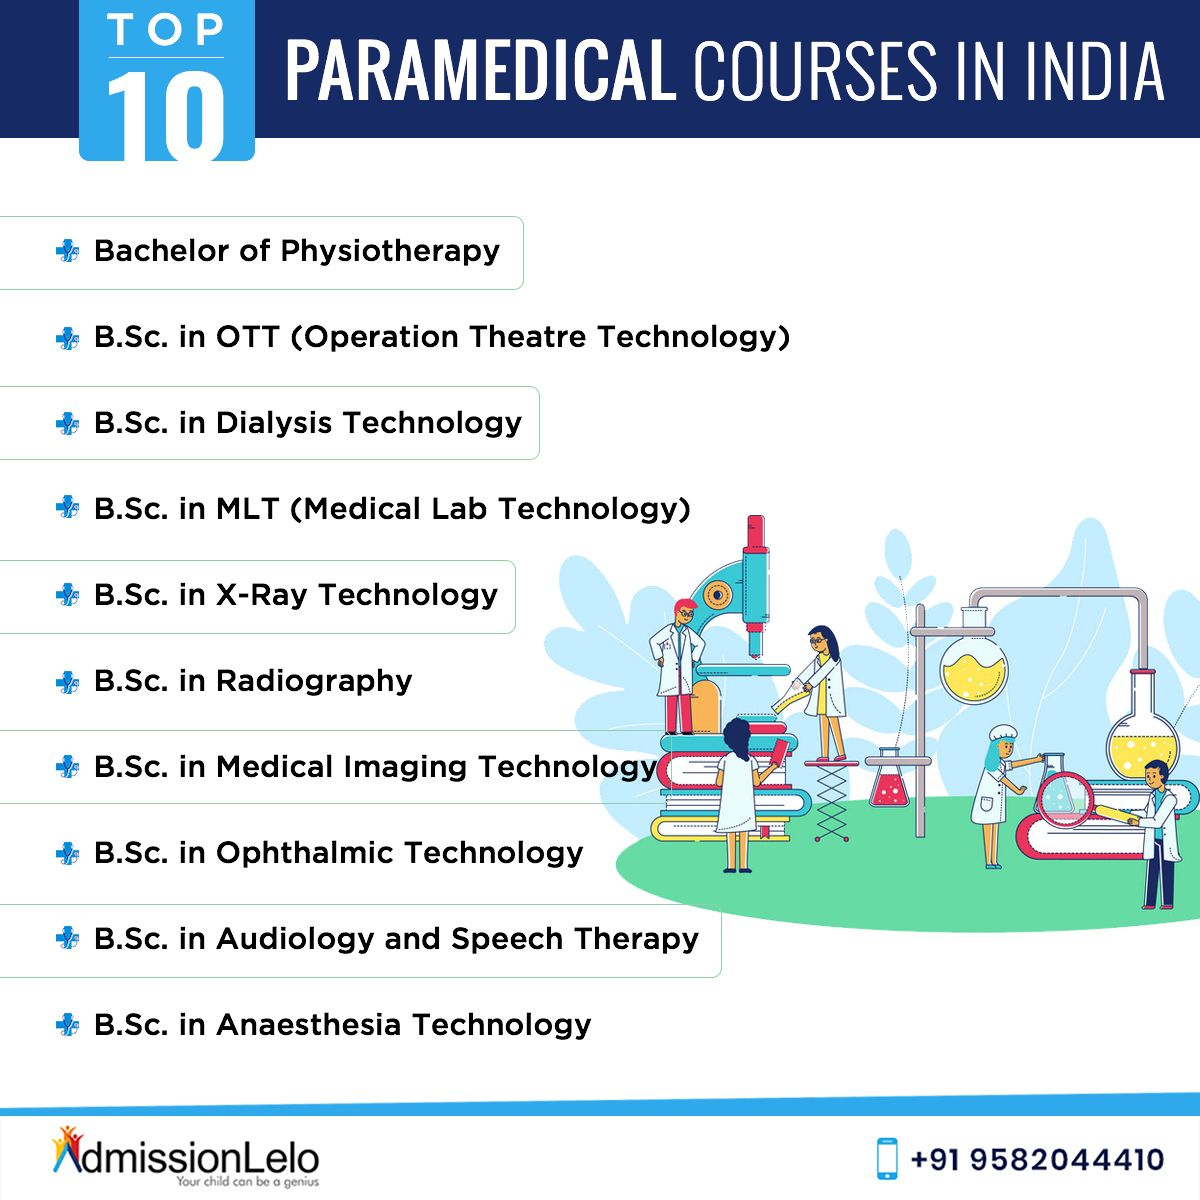 Paramedical Courses Admissionlelo Paramedical Courses Medical Imaging Technology Bachelor Of Physiotherapy